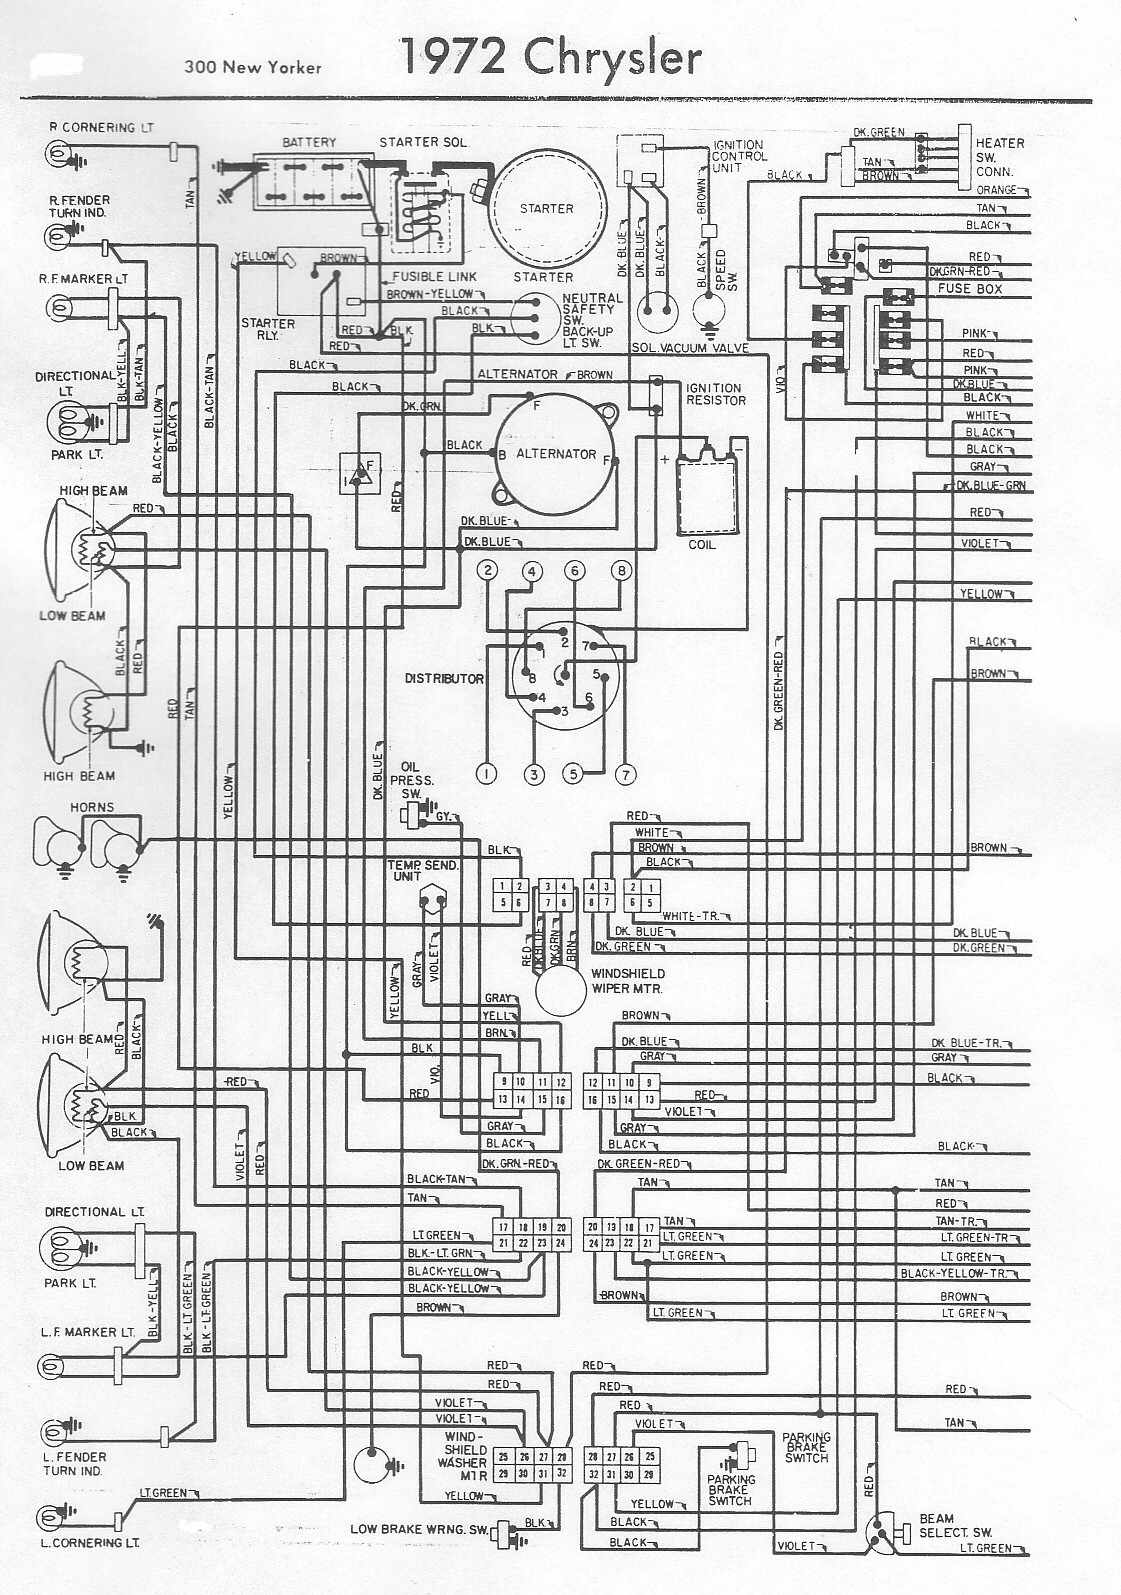 automotive diagrams archives page 275 of 301 wiring wiring diagram automotive diagrams archives page 275 of 301 wiring [ 1121 x 1595 Pixel ]